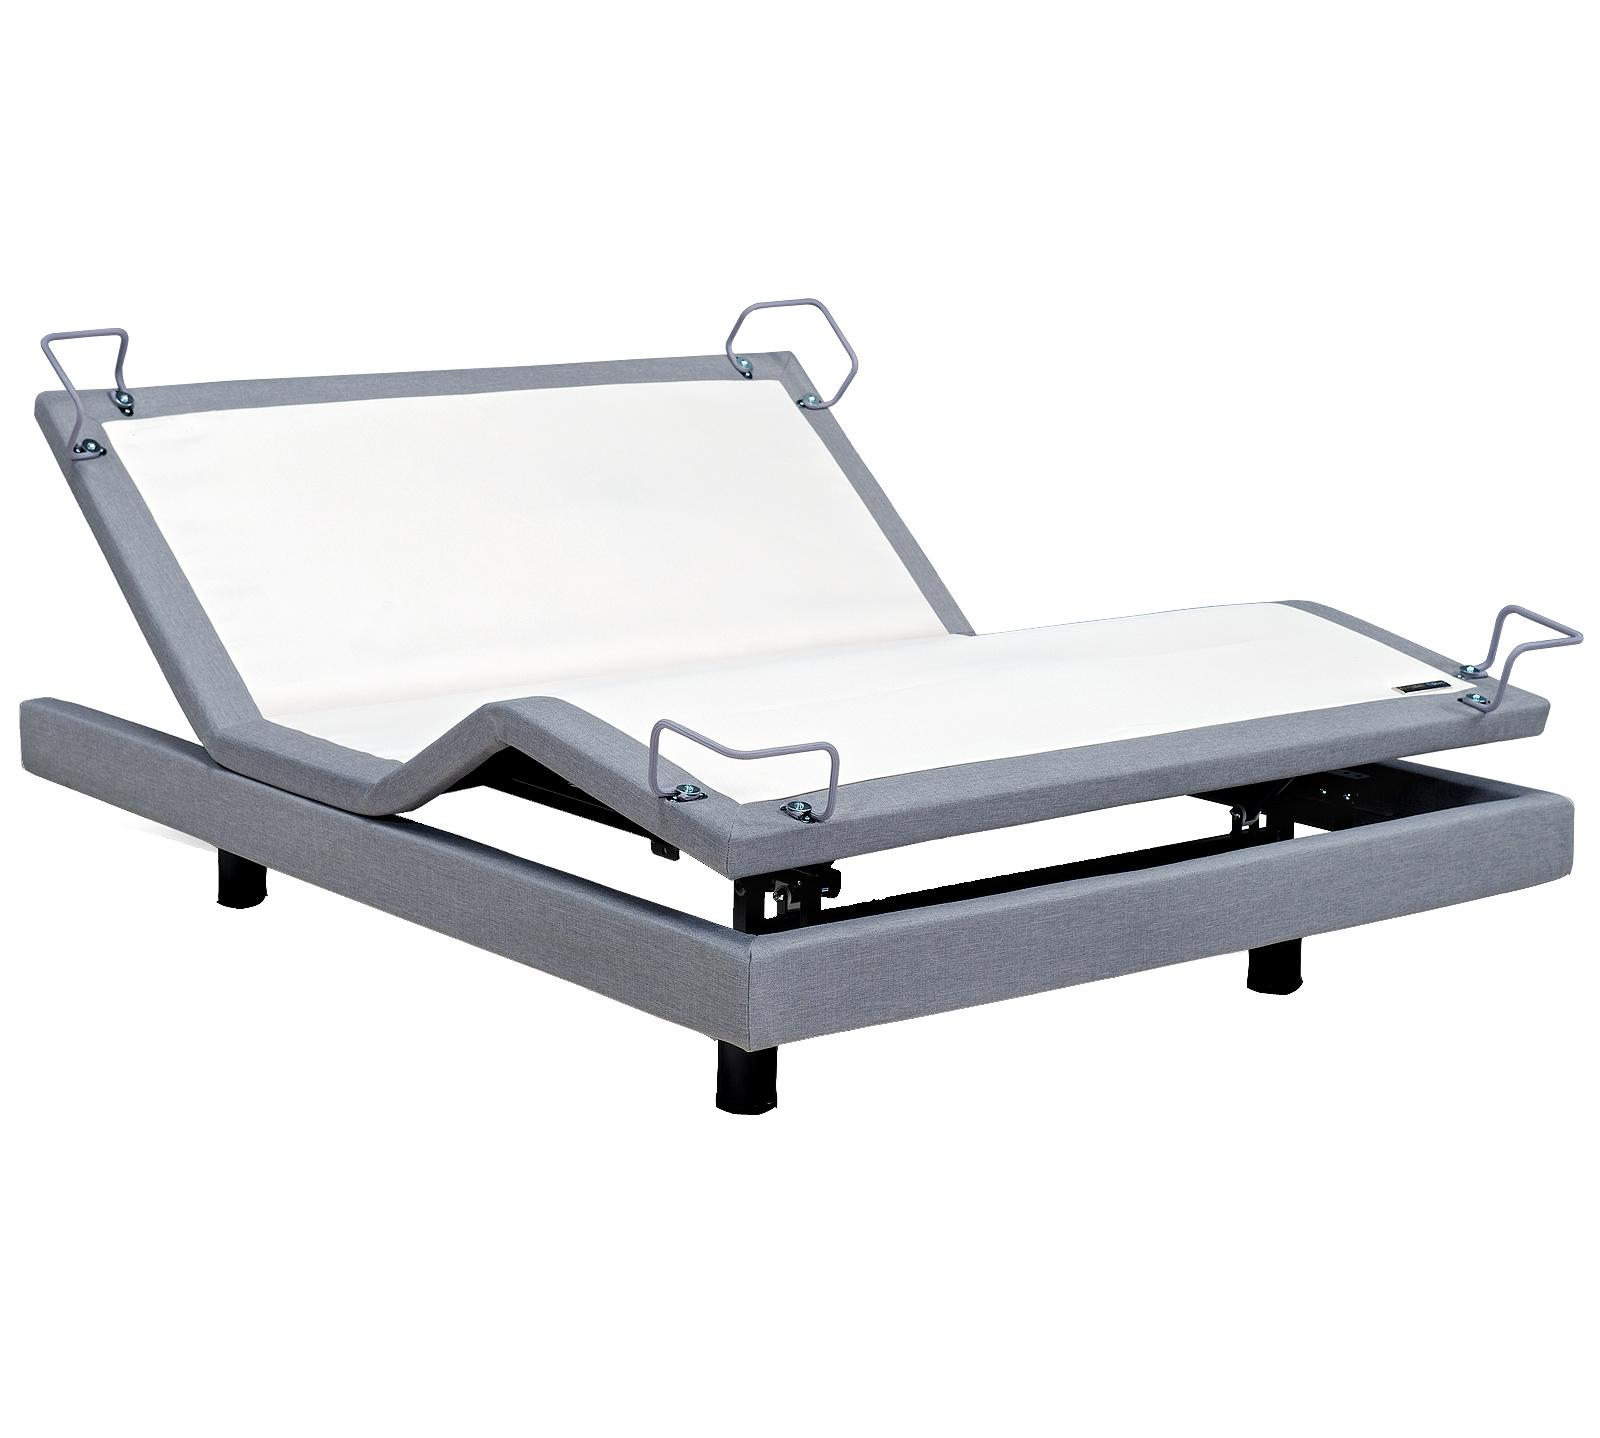 Fullsize Adjustable Beds Come In Your Choice Of Full